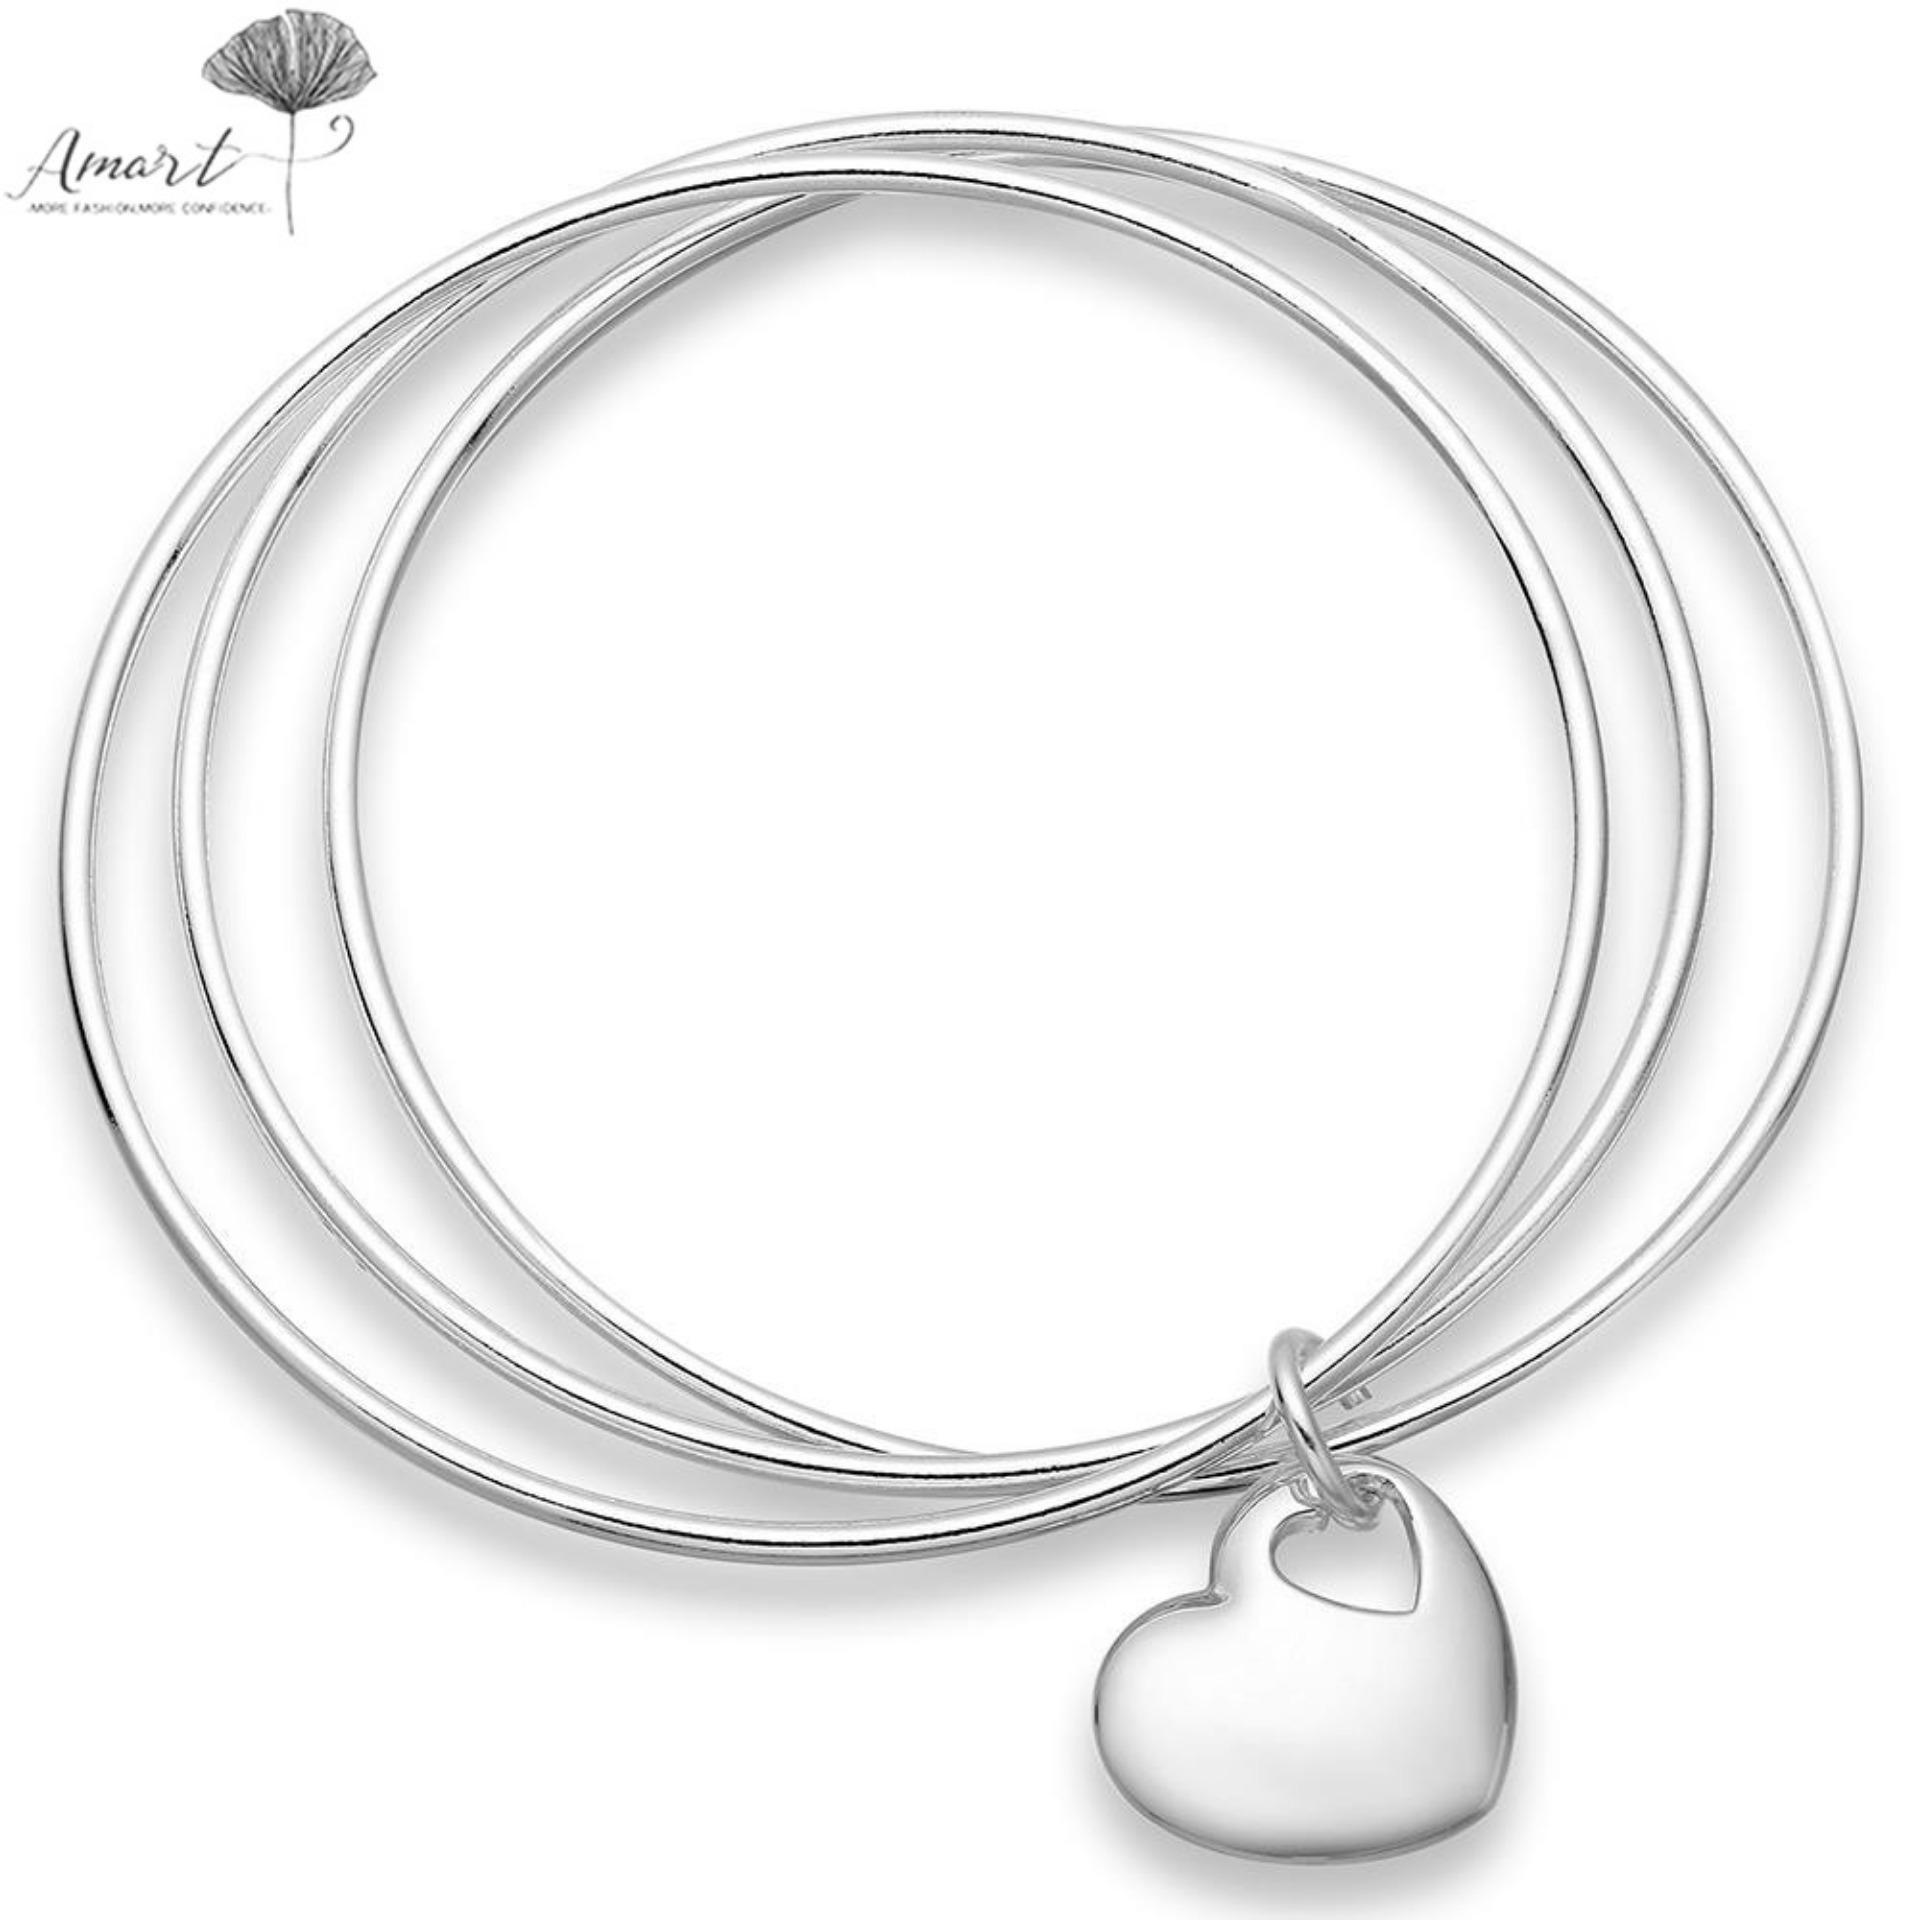 Amart Korean Fashion Women Jewelry 925 Sterling Silver Triple Circle Heart Bangle Bracelet - intl